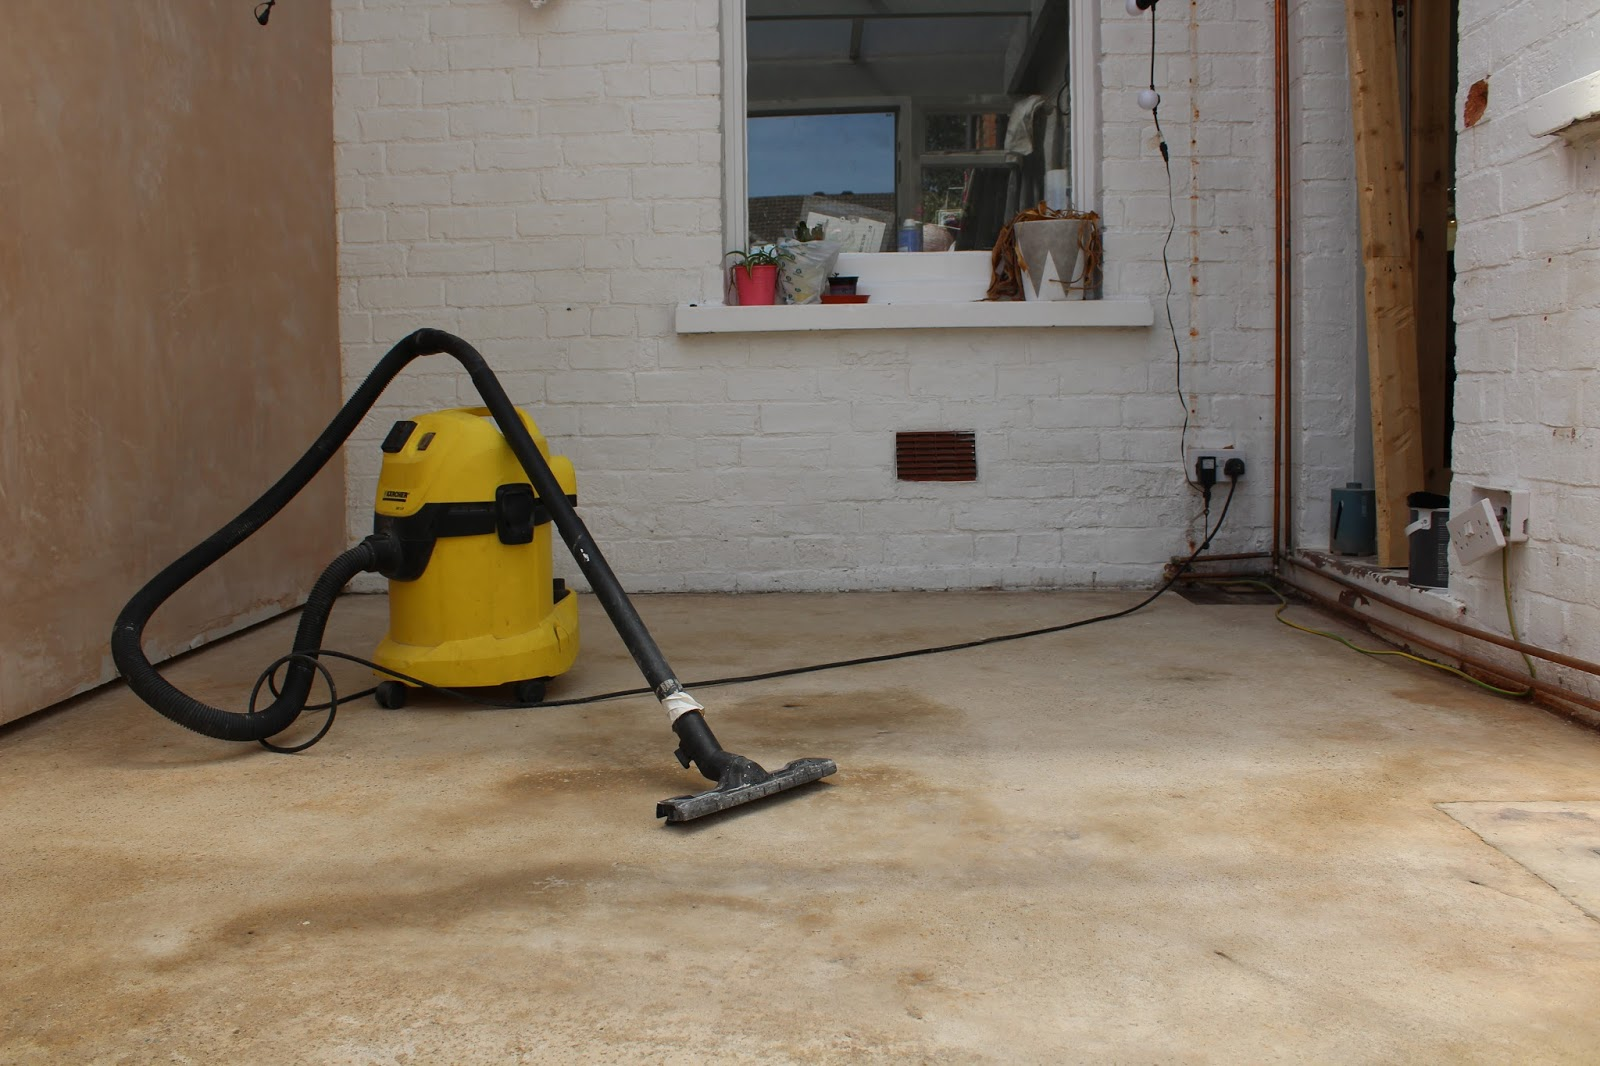 karcher vacuum in use